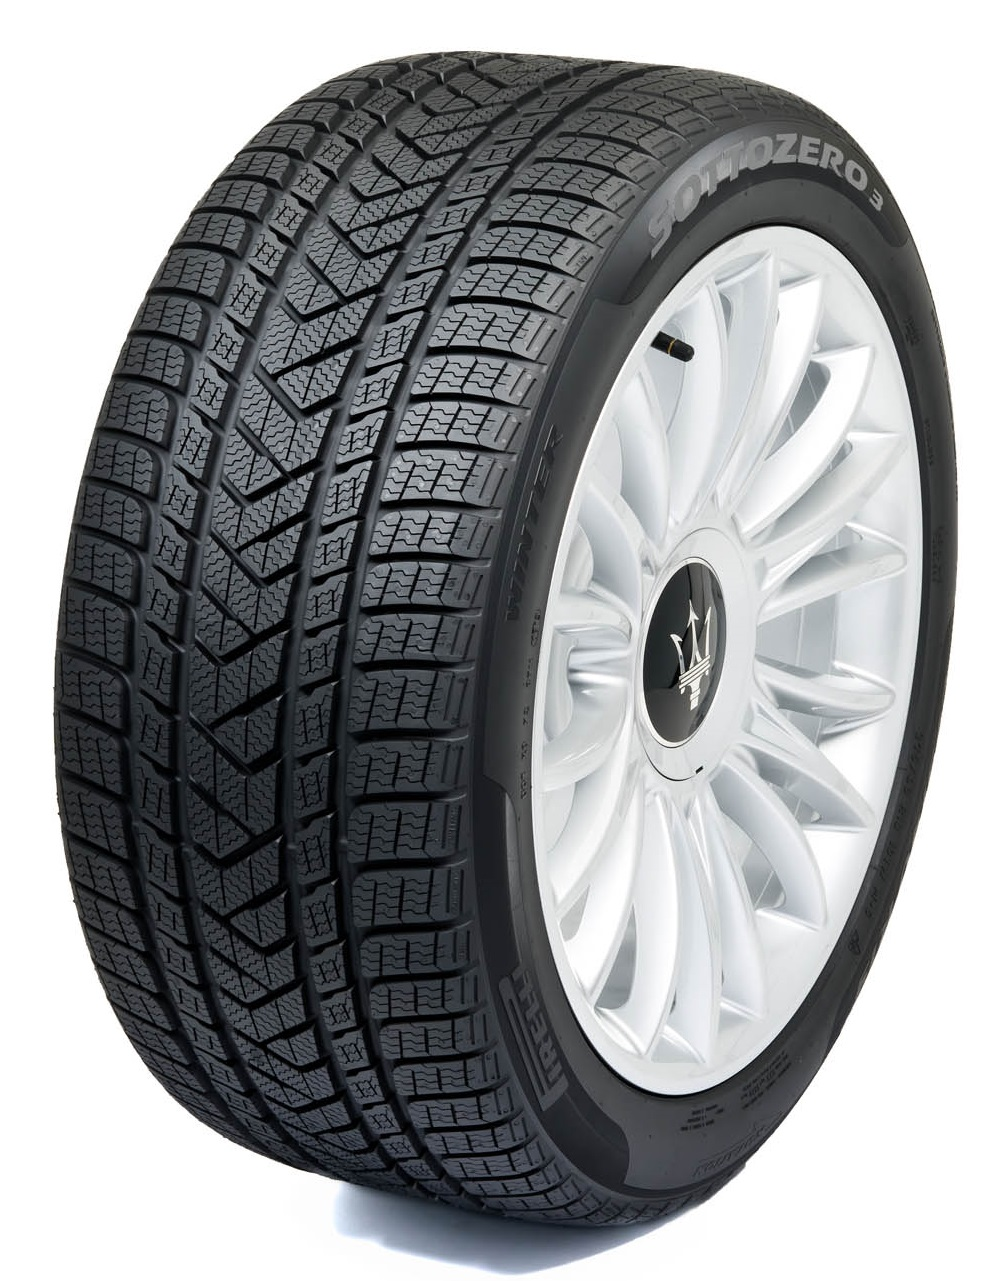 Anvelope IARNA PIRELLI WINTER SOTTO ZERO 3 RUN FLAT - 205/60 R16 96H XL ROF